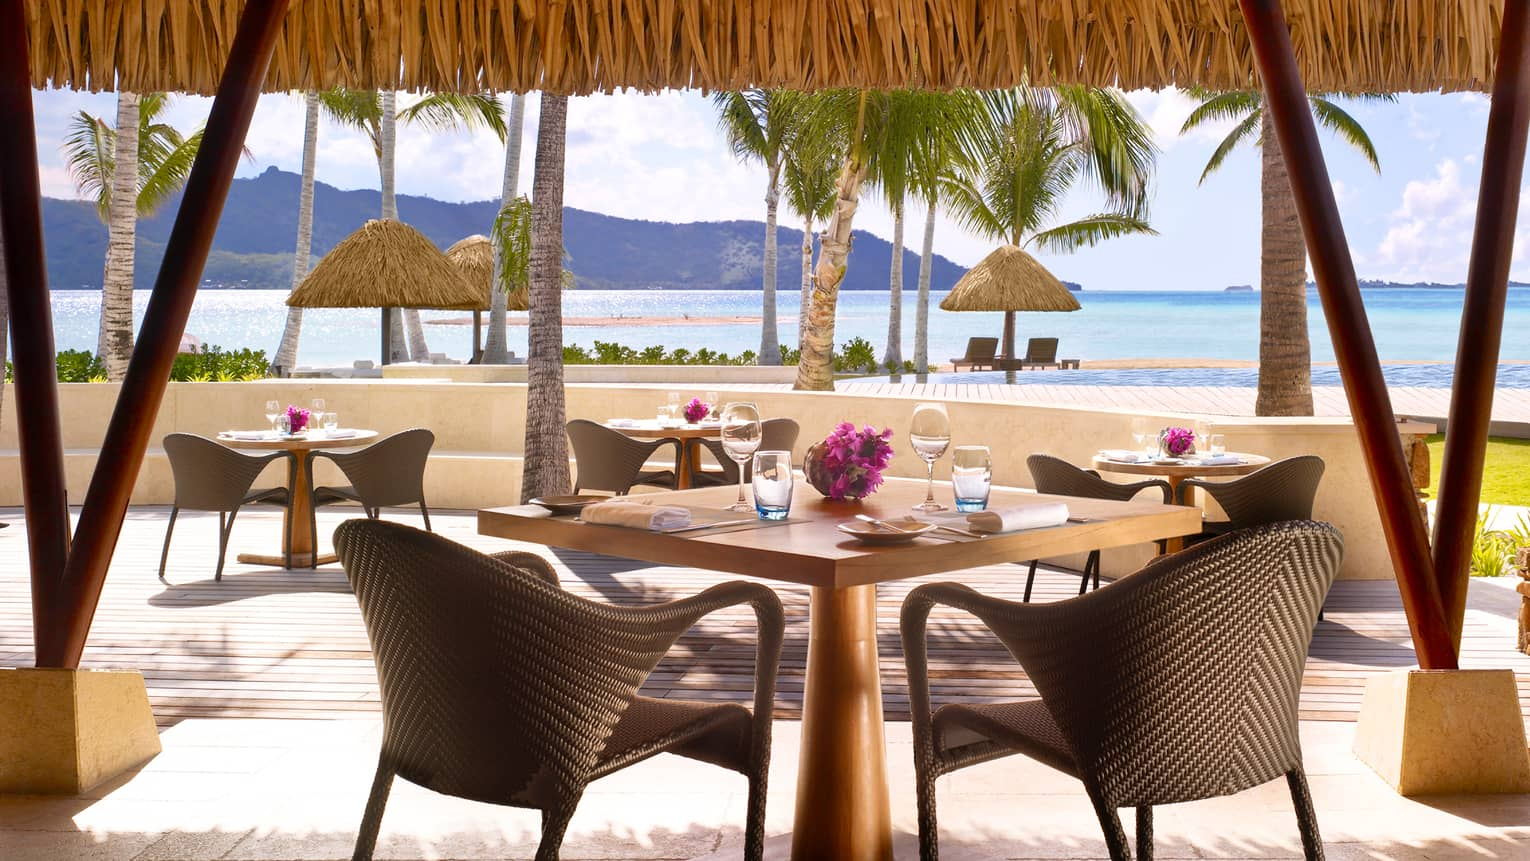 Tere Nui dining table with wicker chair looking out at sunny patio, ocean